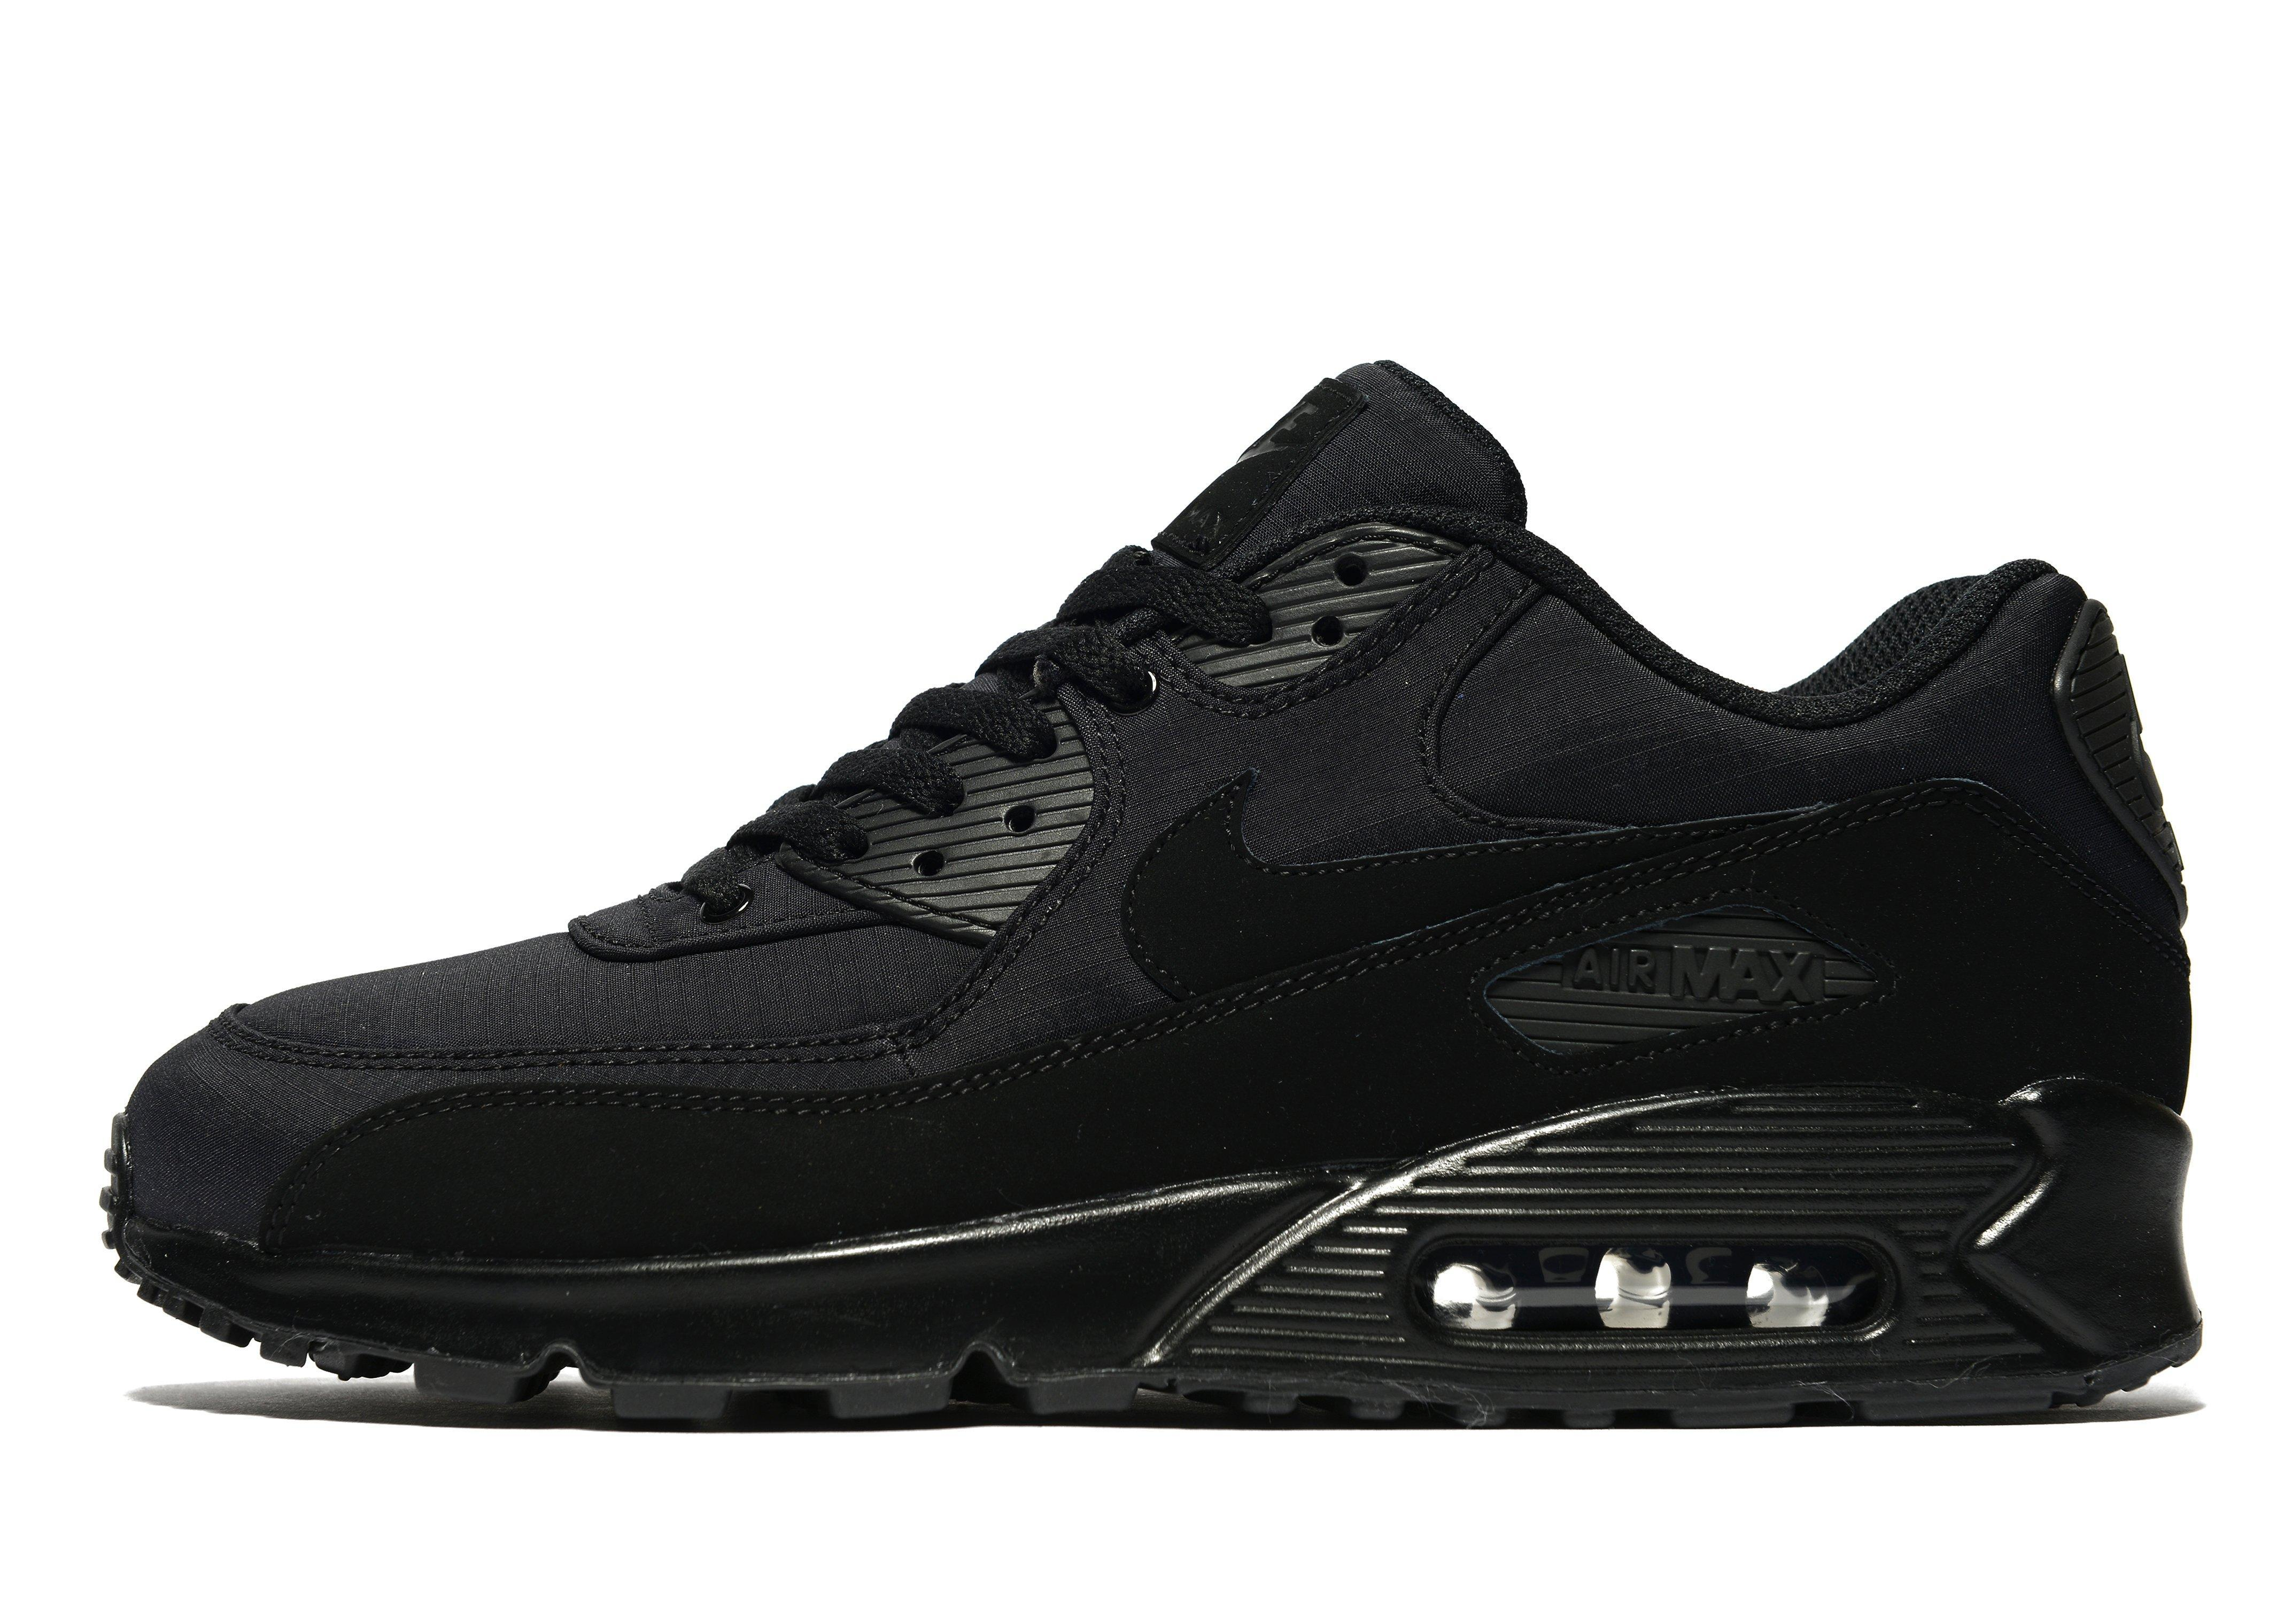 nike air max 90 ripstop in black for men lyst. Black Bedroom Furniture Sets. Home Design Ideas